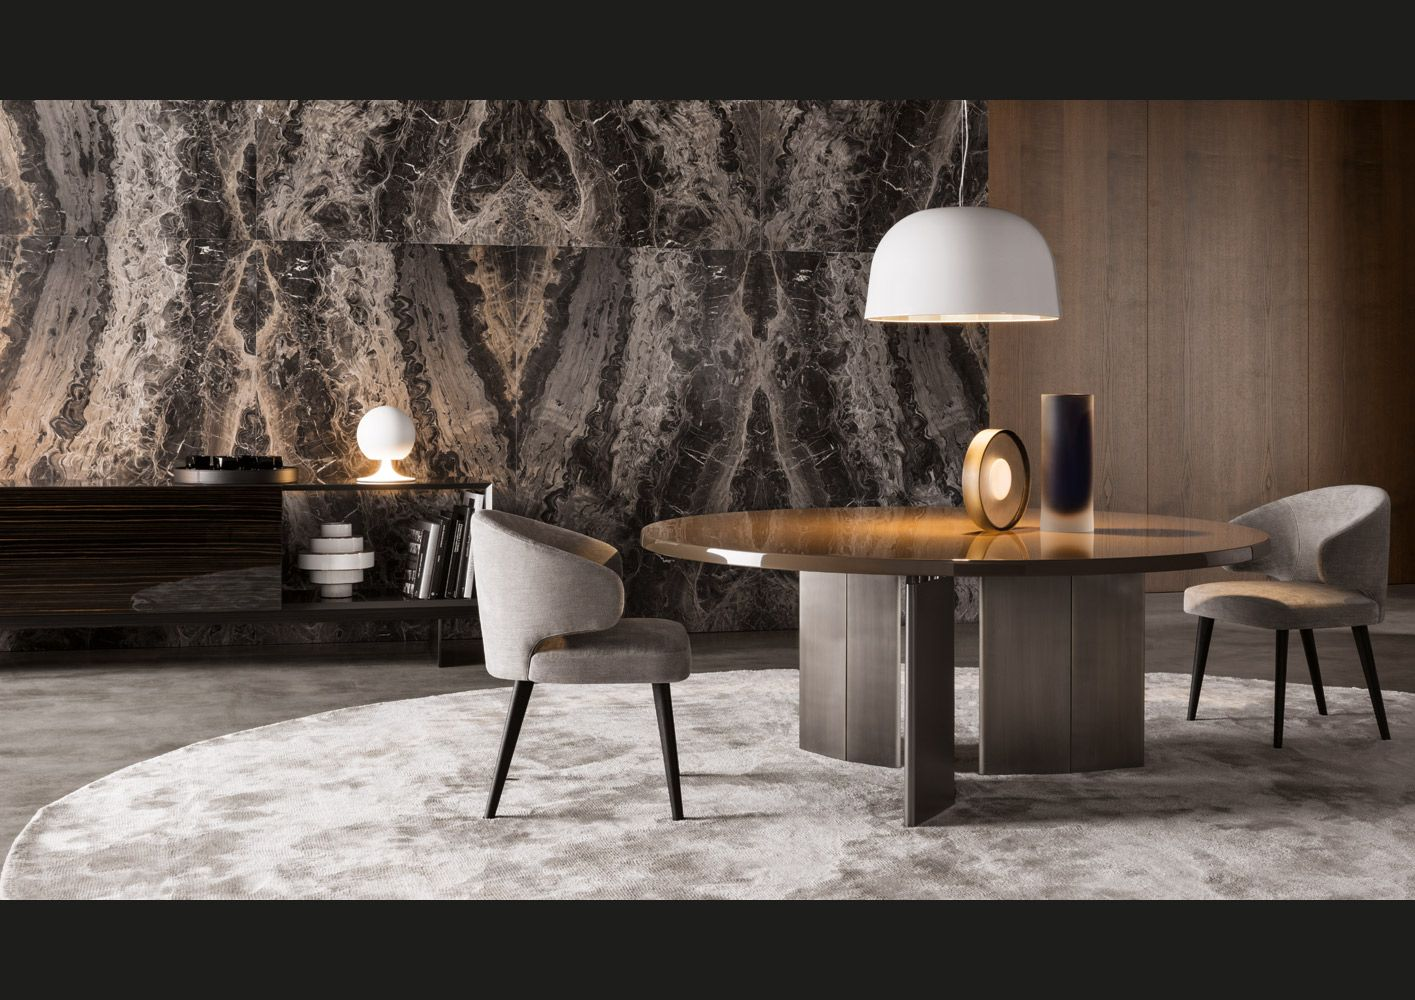 32 Stylish Dining Room Ideas To Impress Your Dinner Guests: Estilo Contemporaneo